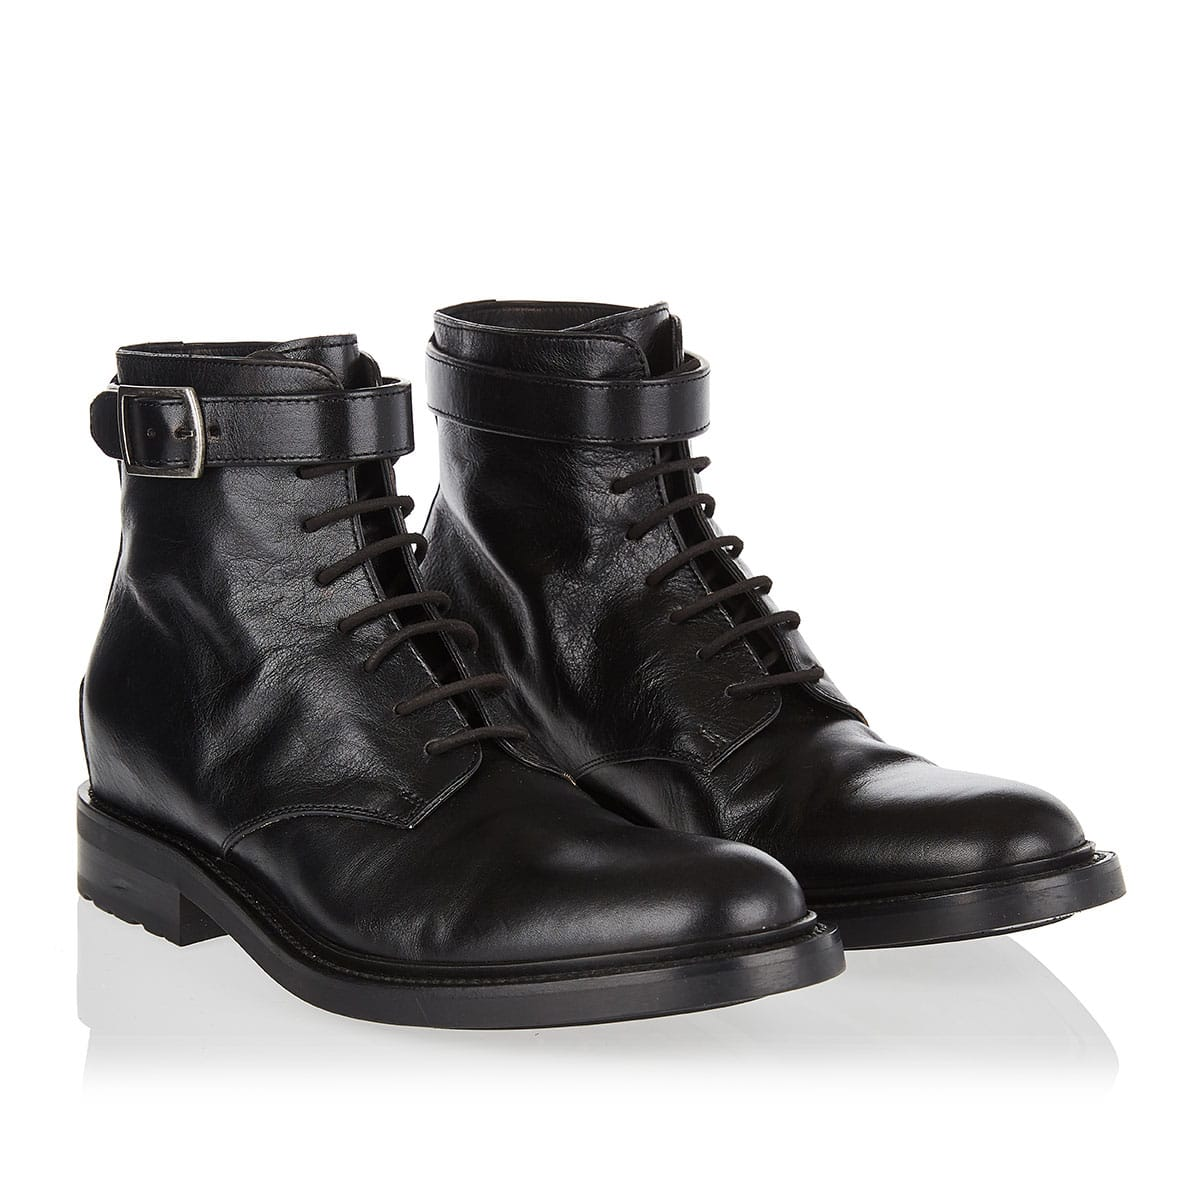 Stud-detailed combat boots